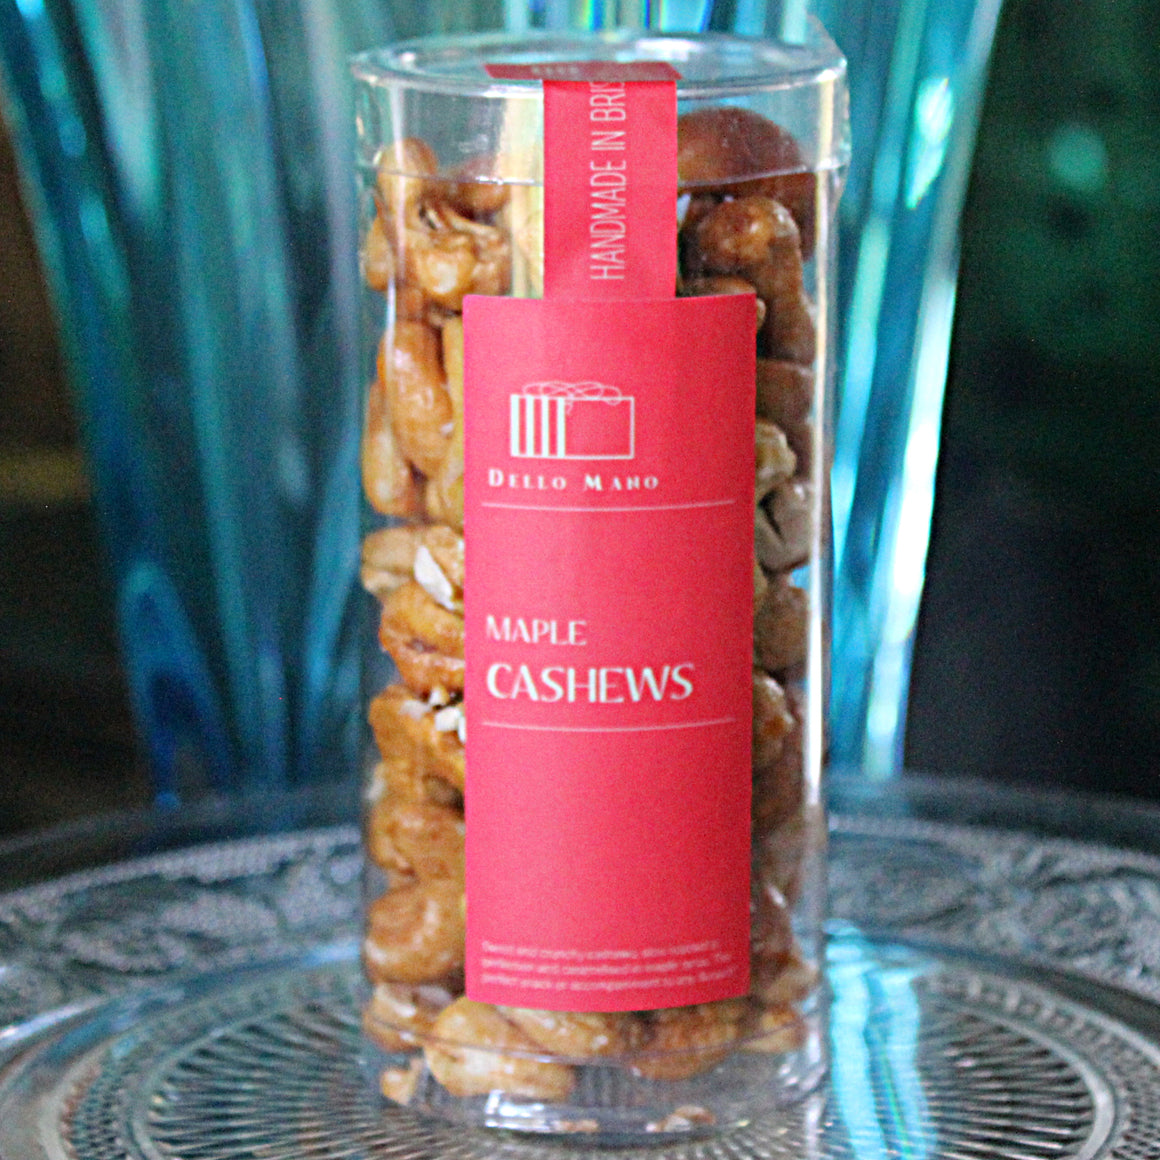 Maple Caramalised Pecans perfect as a little gift, inclusion in a hamper or just a tasty snack. Our Caramalised Cashews are hand caramalised in small batches.